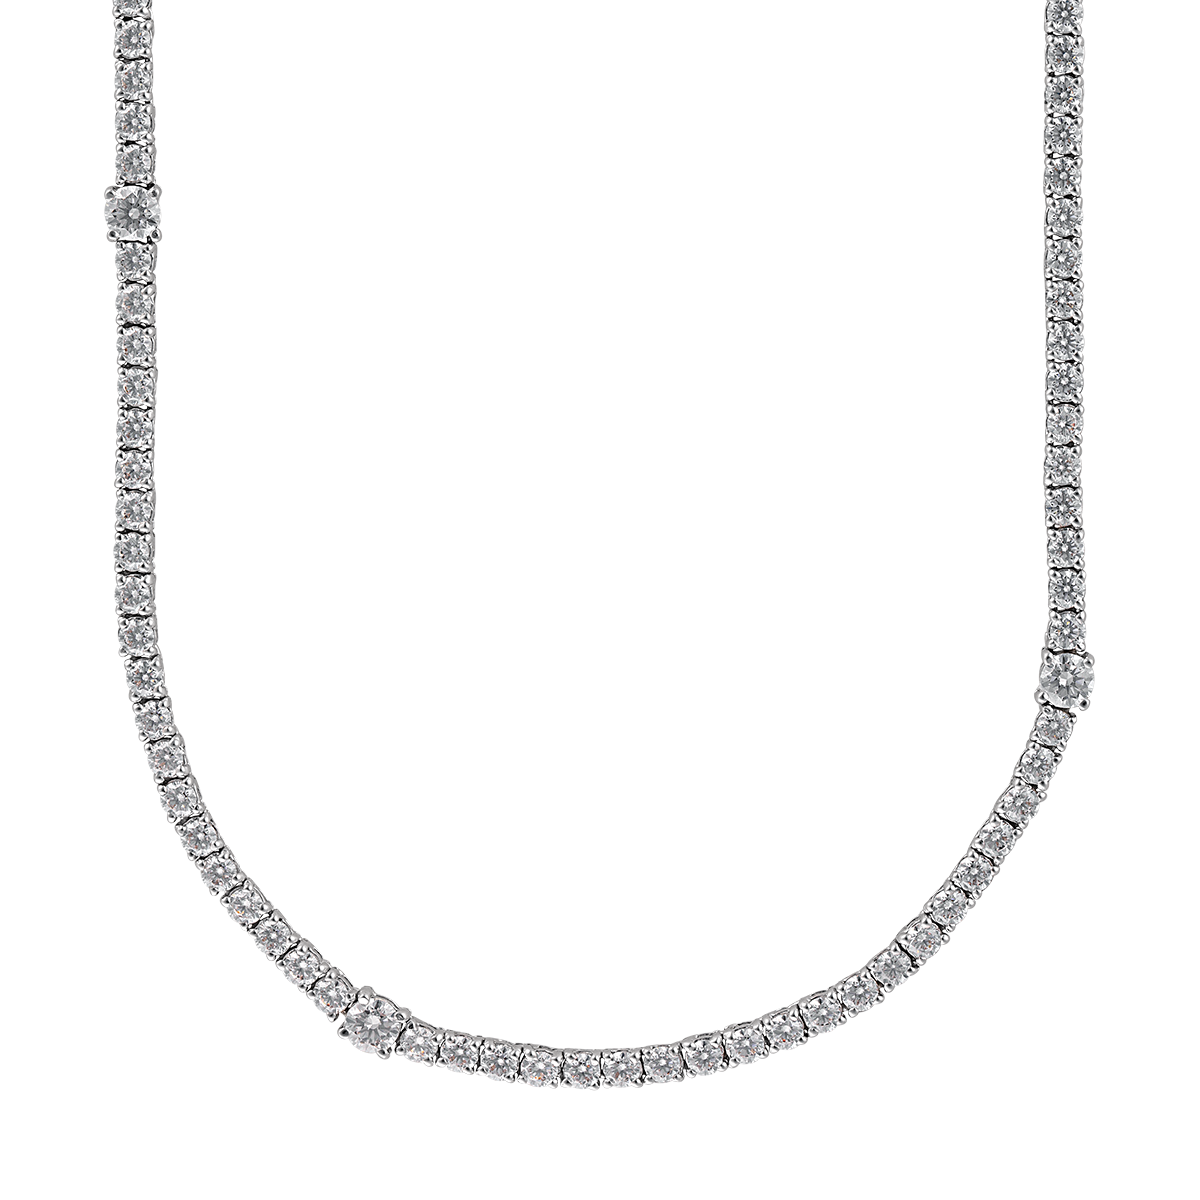 Diamond chain png. Madeleine solitaire necklace ciro